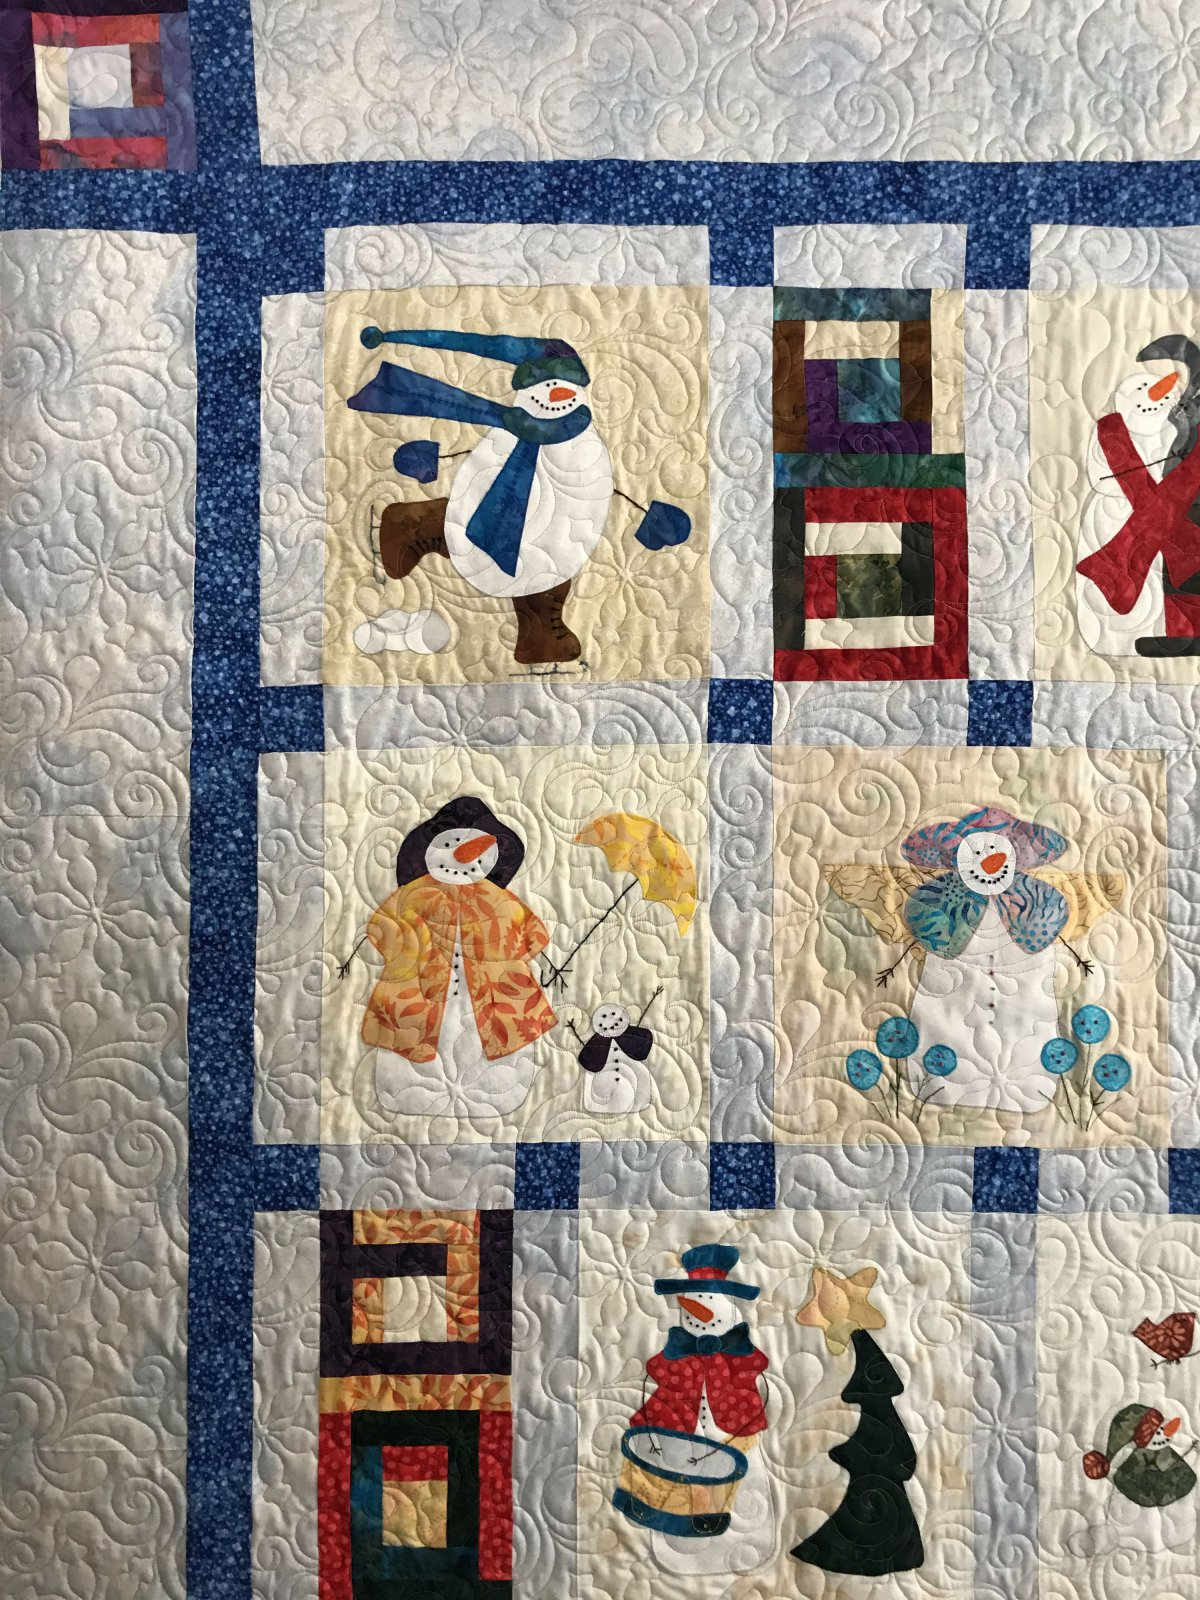 Calendar of Snowmen close up